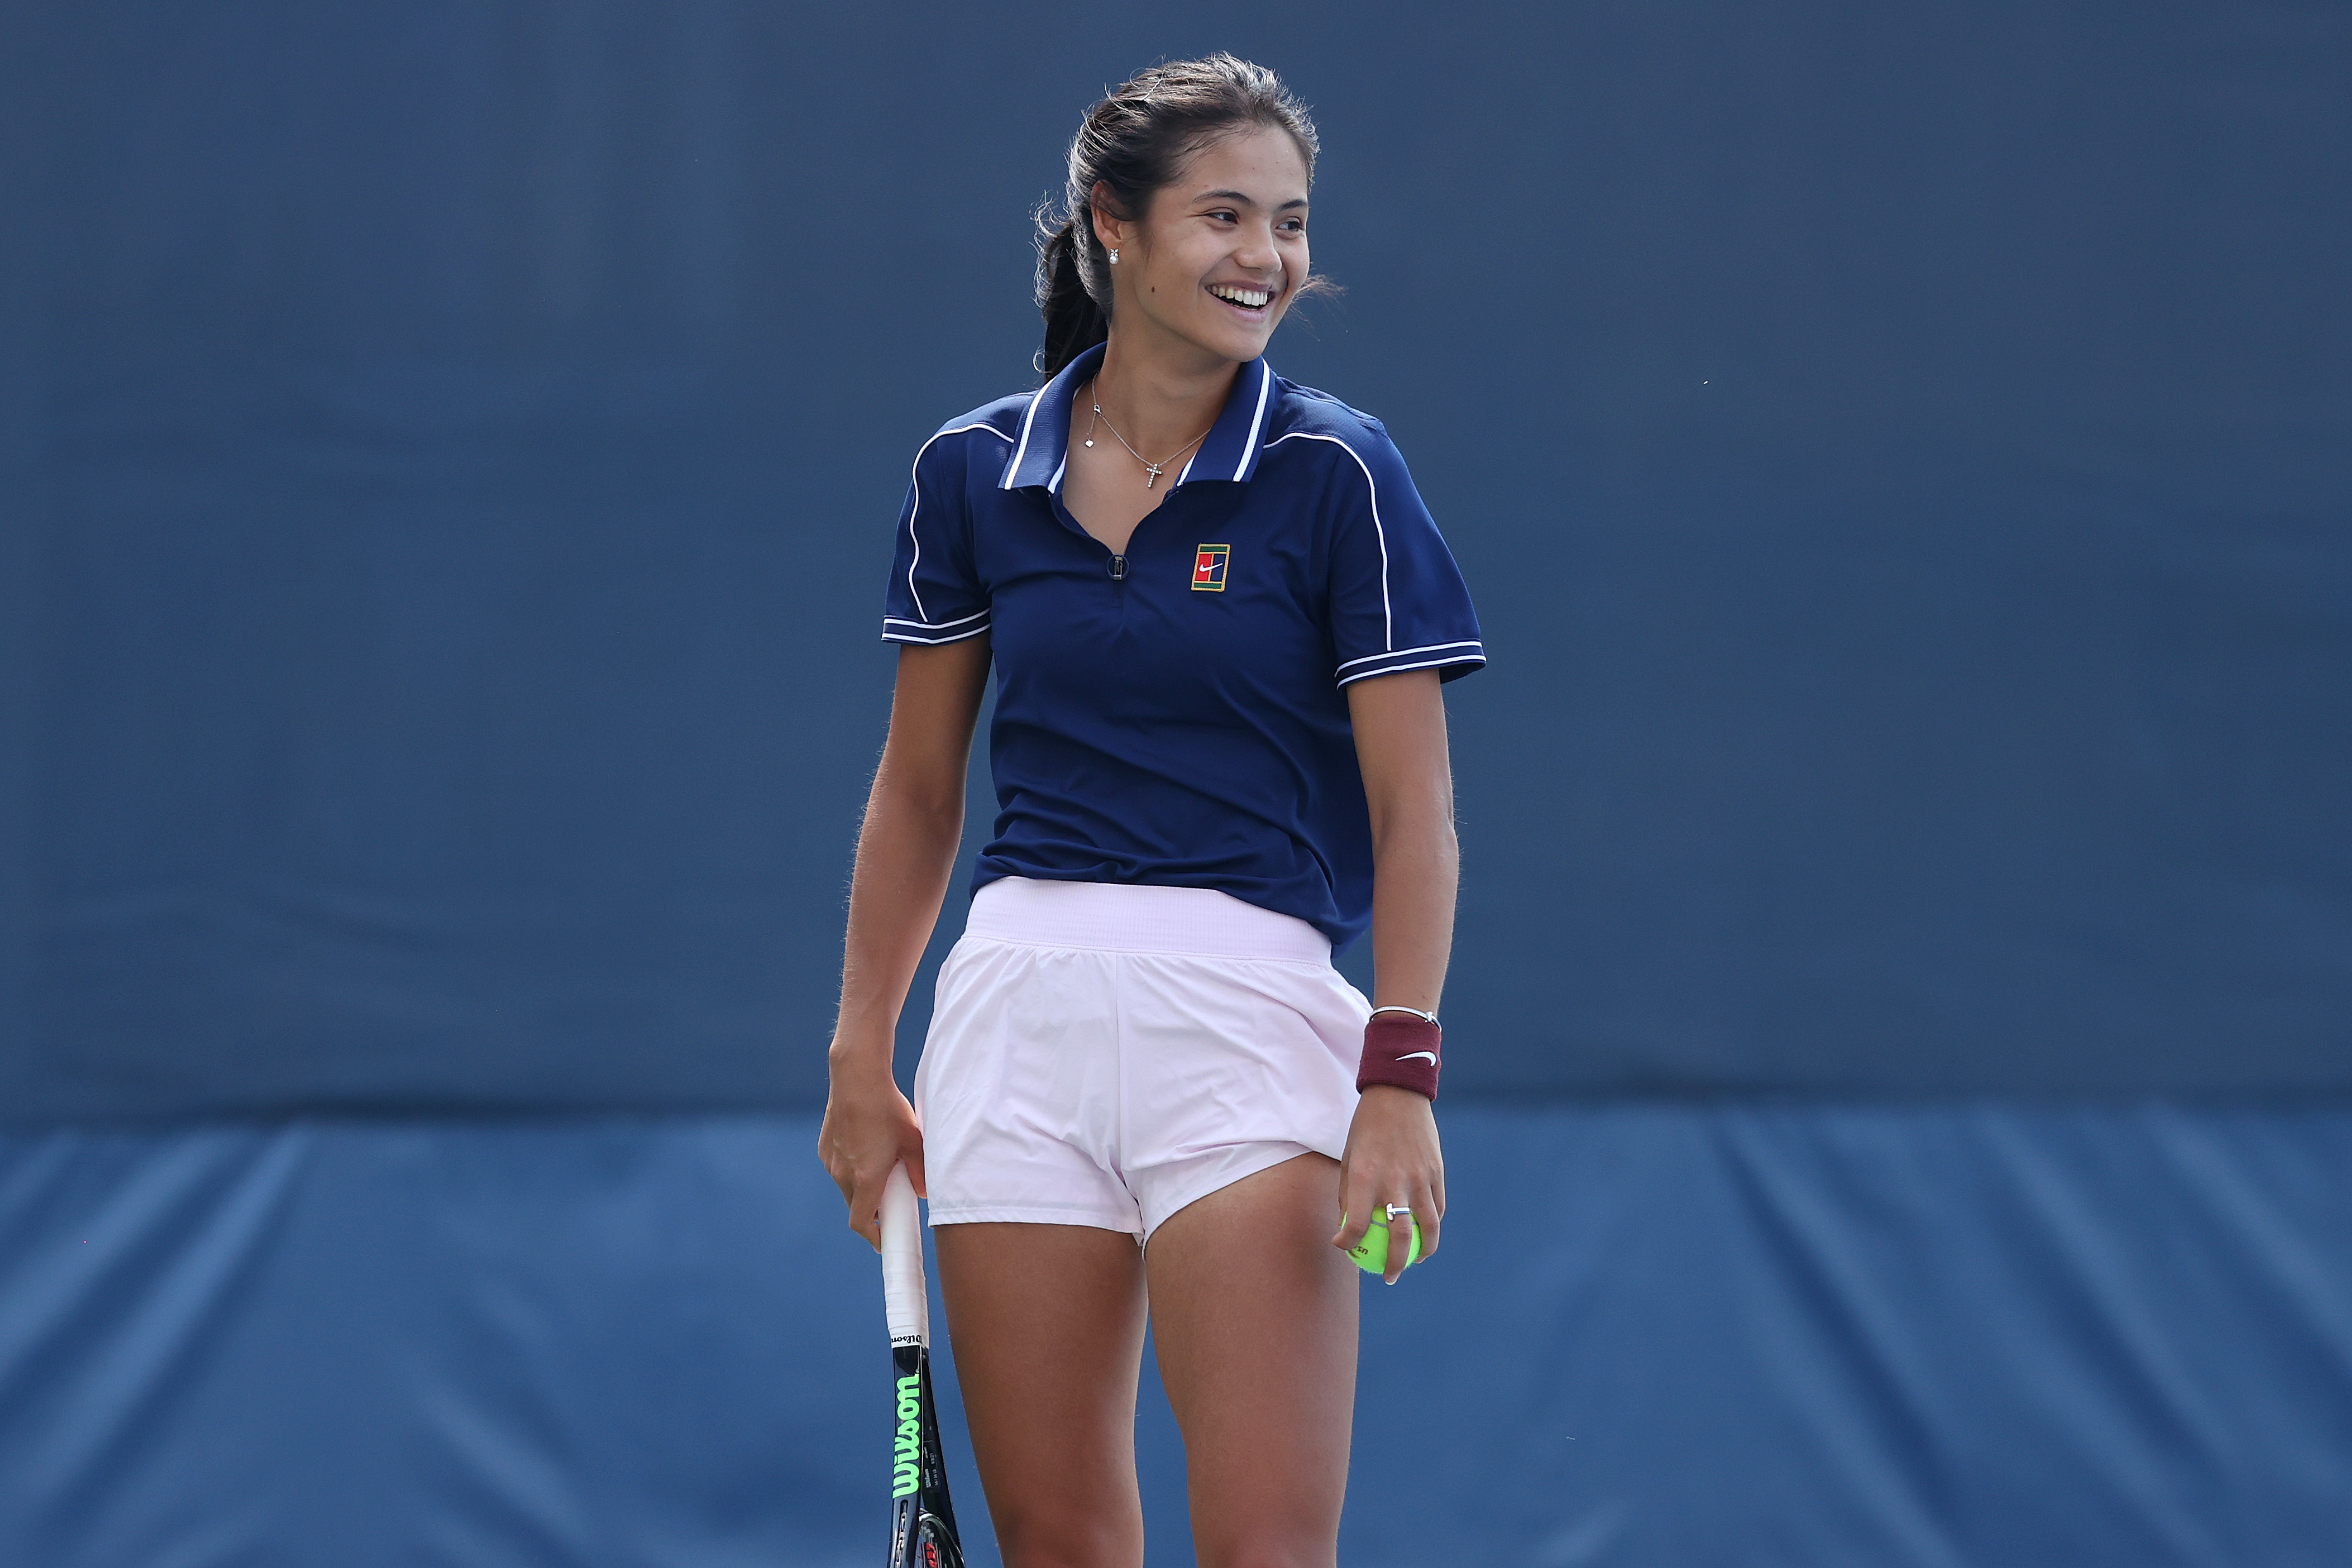 Emma Raducanu of Great Britain smiles during a training session on Day Twelve of the 2021 US Open at the USTA Billie Jean King National Tennis Center on September 10, 2021 in the Flushing neighborhood of the Queens borough of New York City.